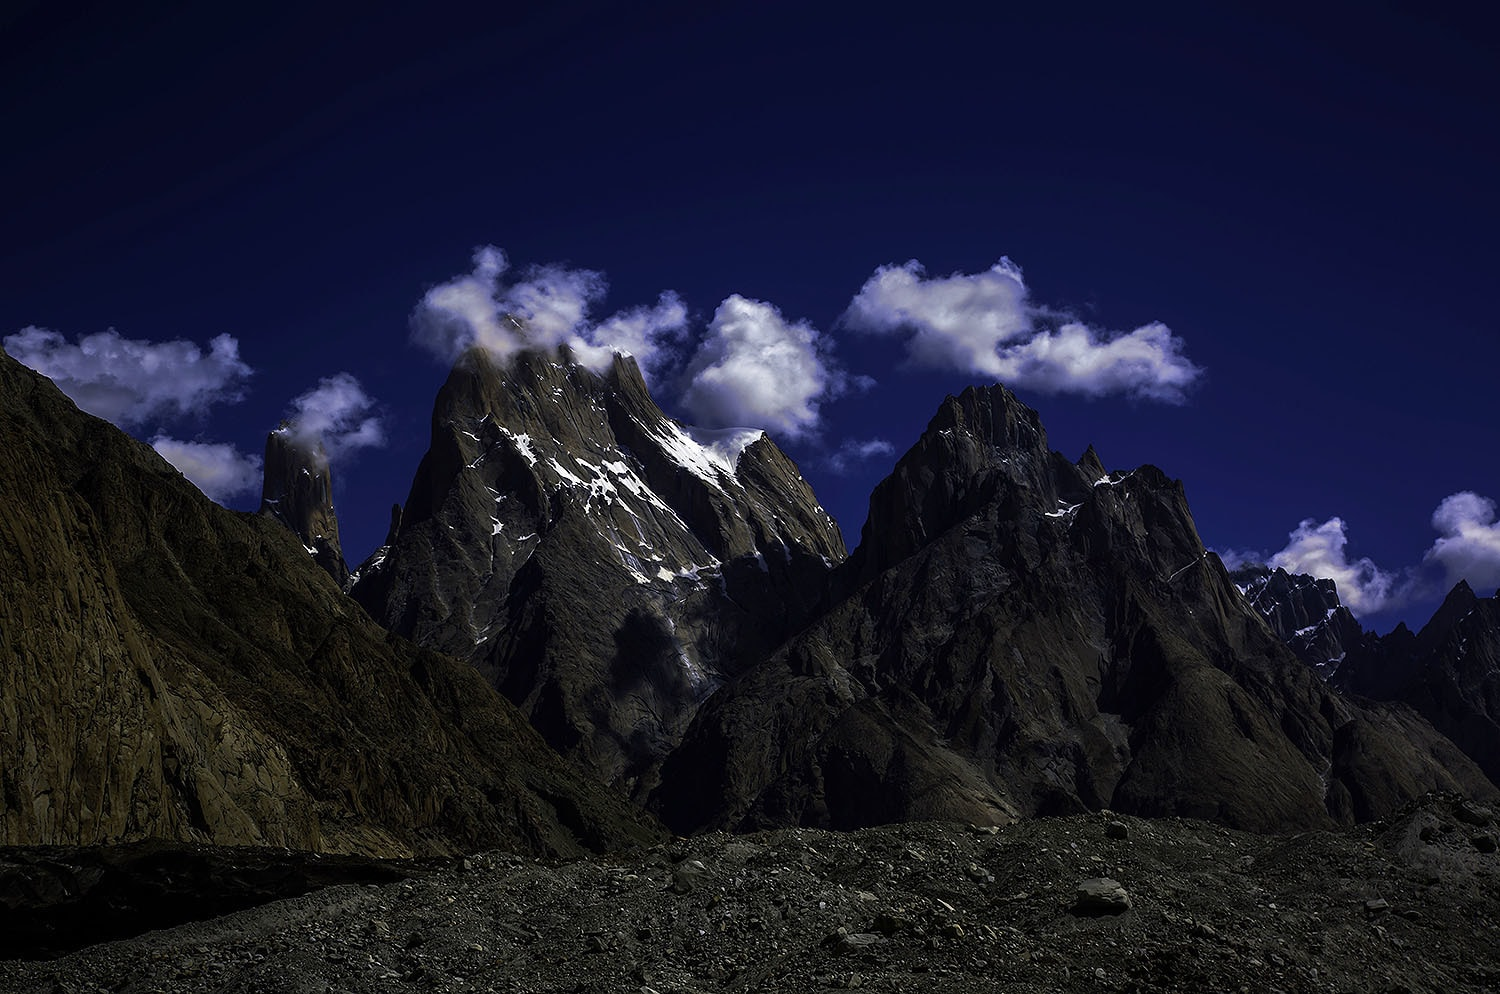 Trango Towers (L) and Lobsang Spire (R). Also visible is the famous Nameless Tower to the left of Trango.